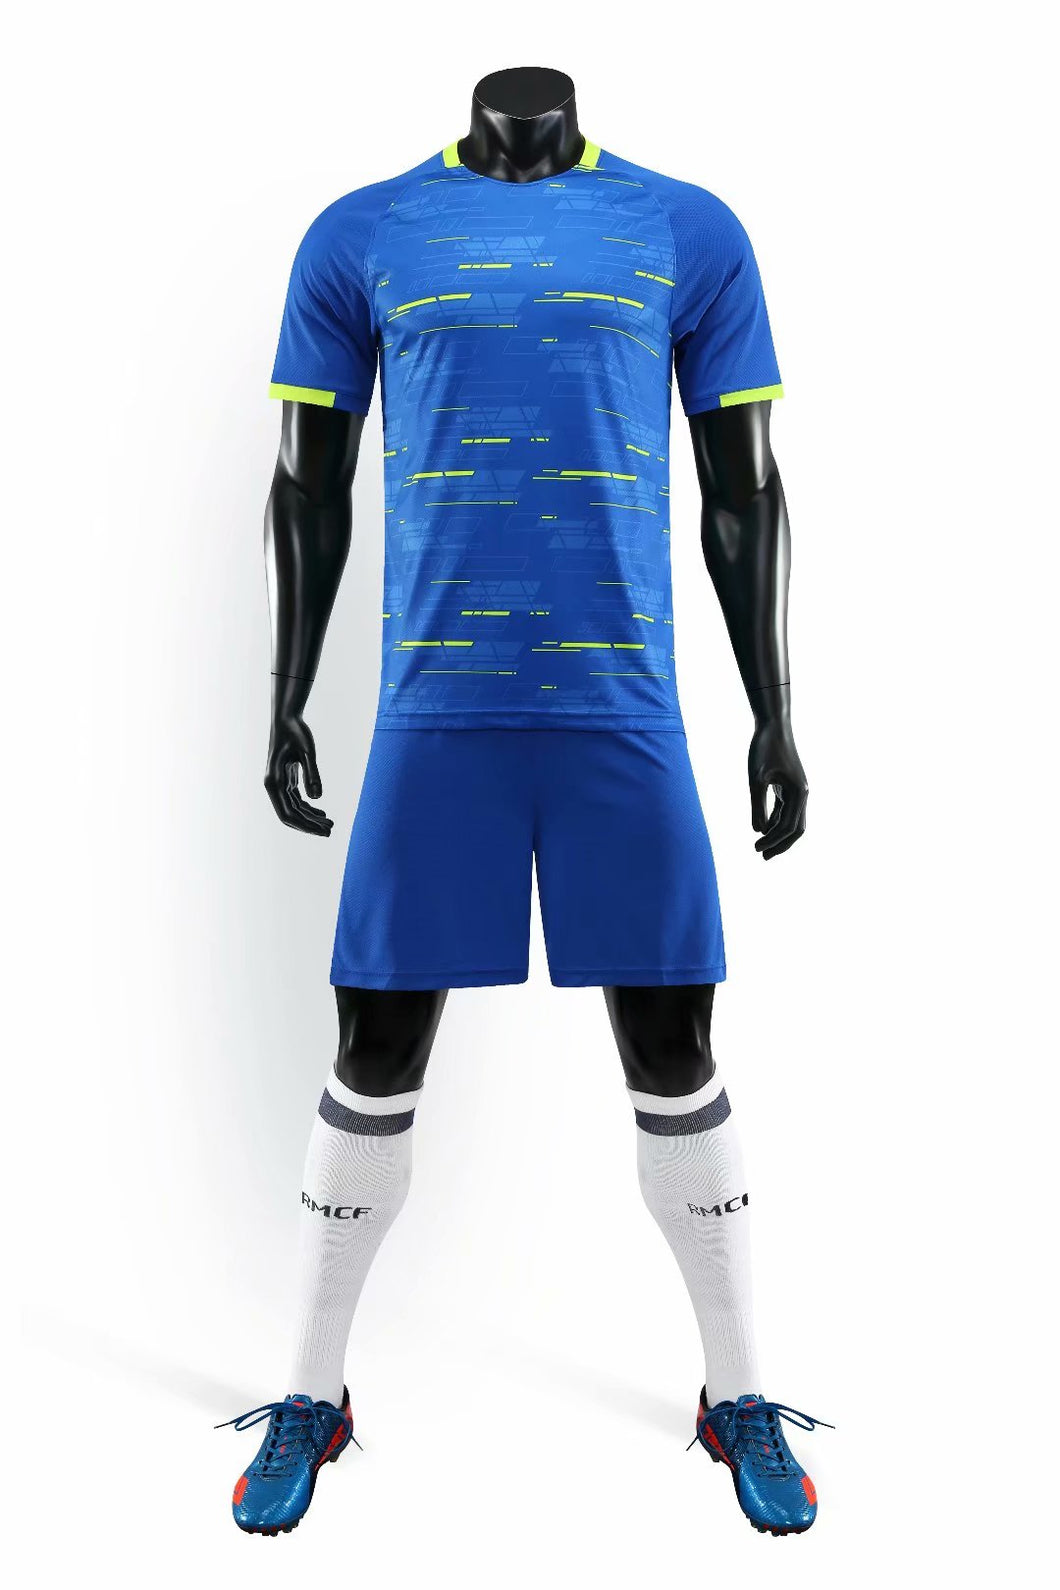 Full Football Kit - Royal Blue with Yellow Trim and Detail.